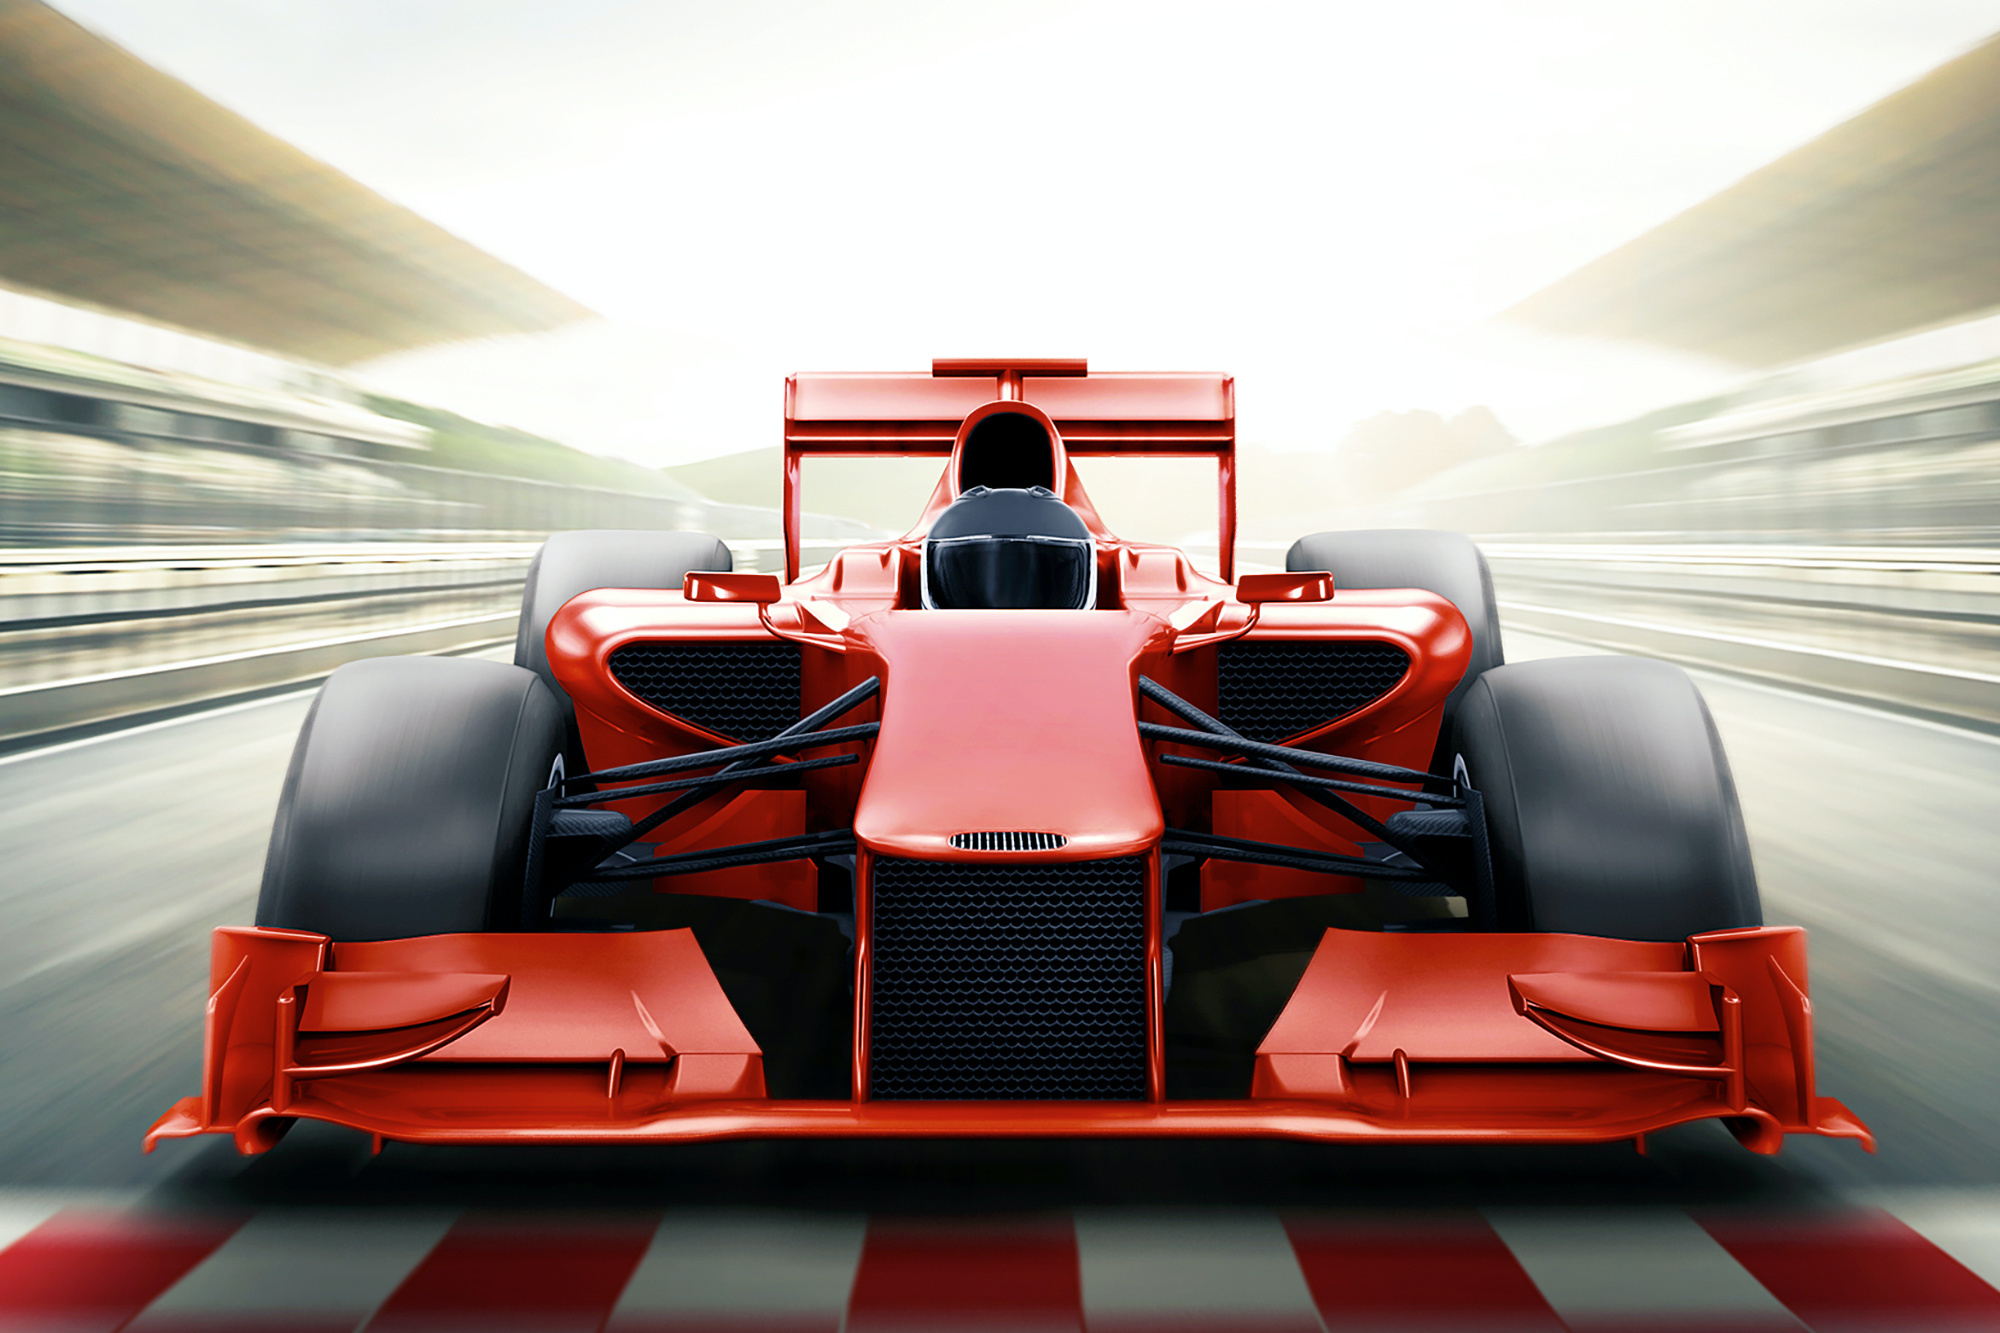 F1, driving the technology revolution whilst helping make cities greener